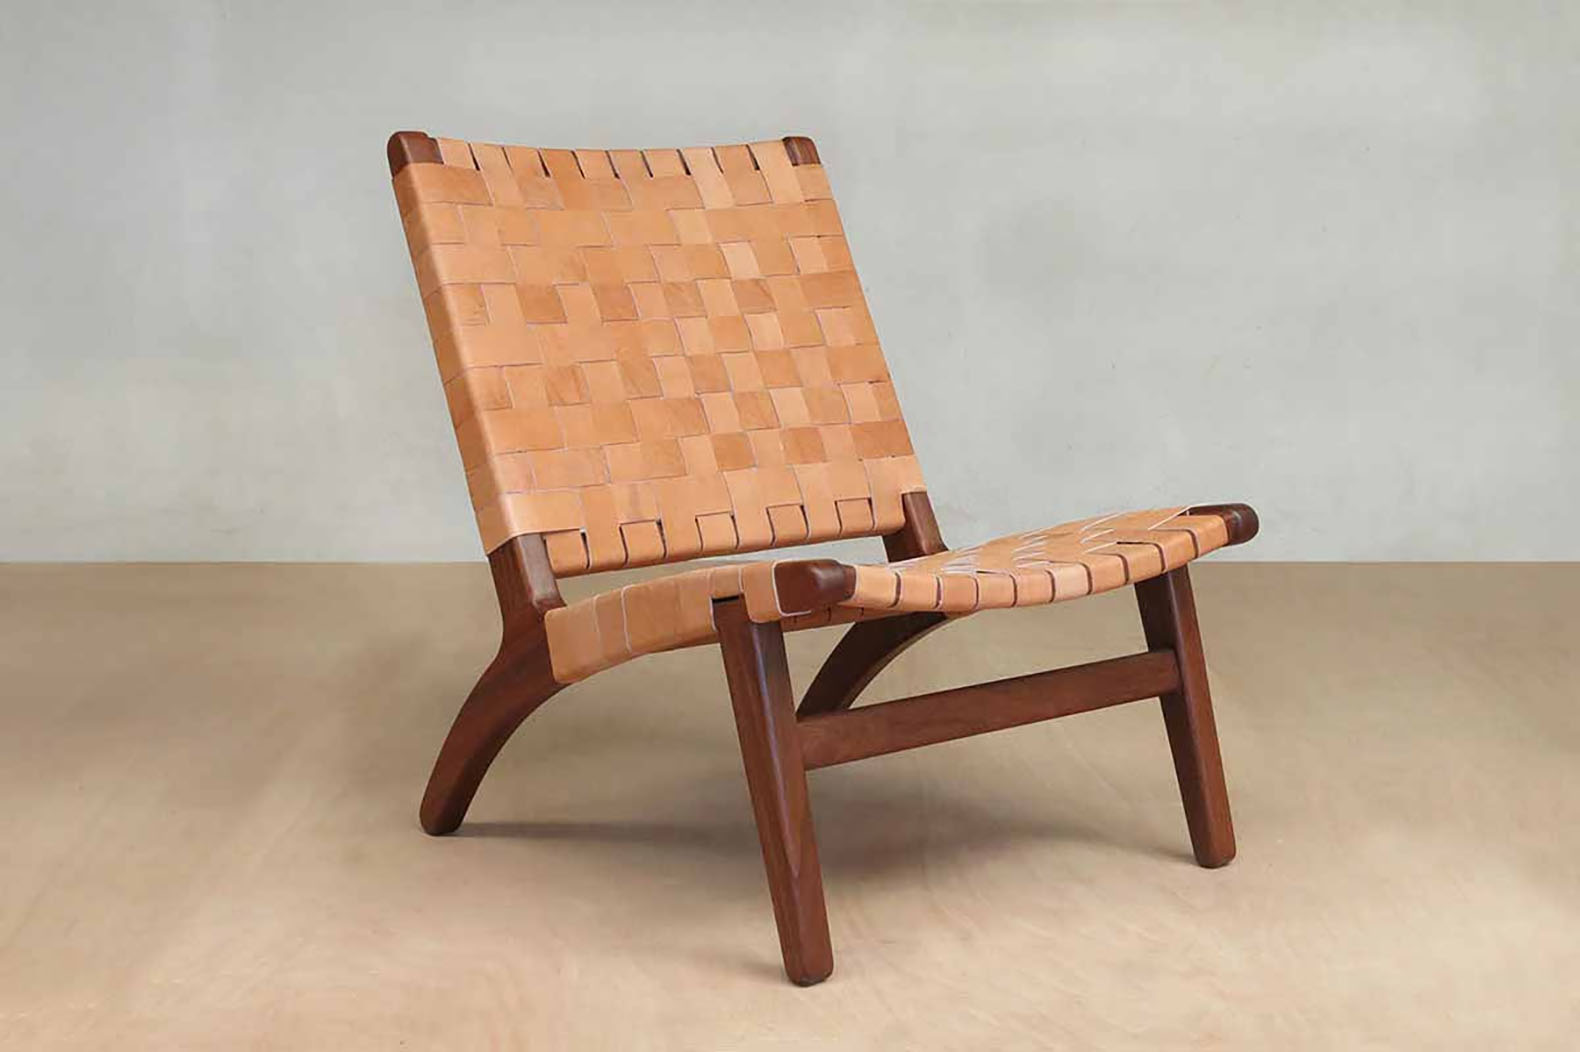 Sustainable furniture masaya u0026 company plants 100 trees for every piece of furniture aljwmbf